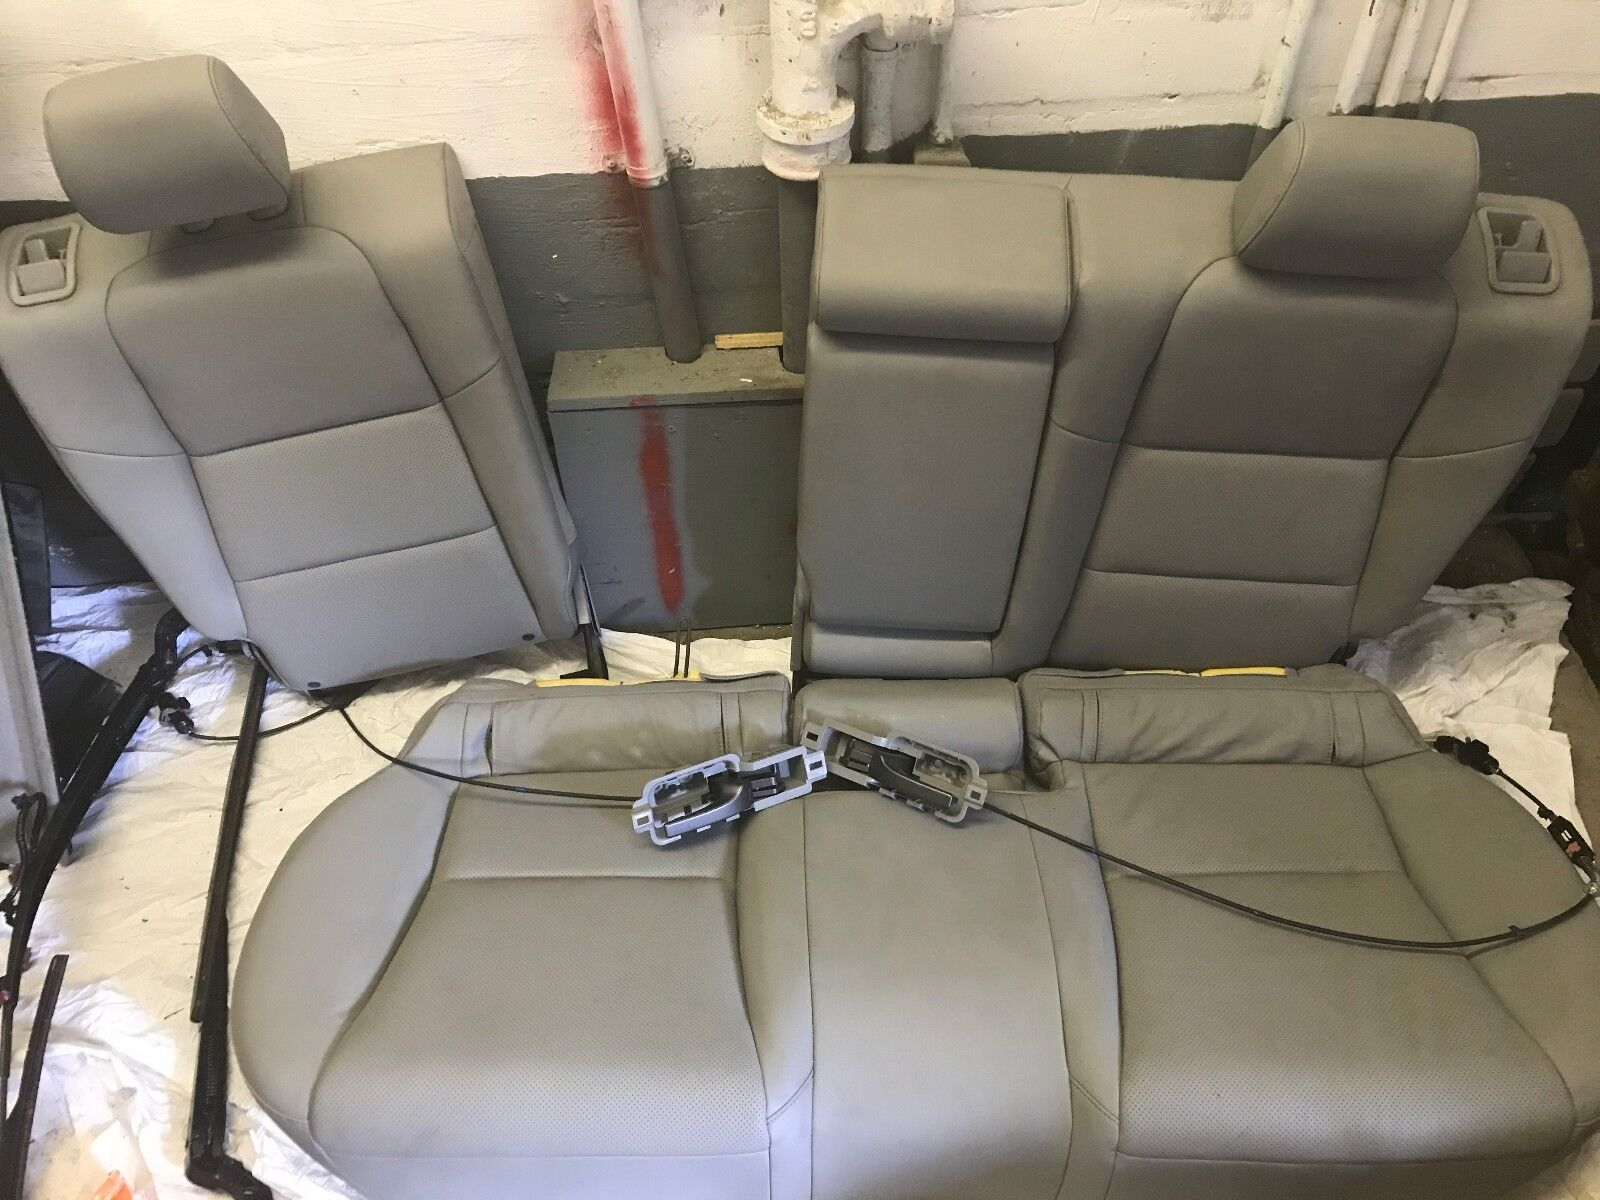 Used Acura RDX Seats For Sale - Acura rdx seat covers